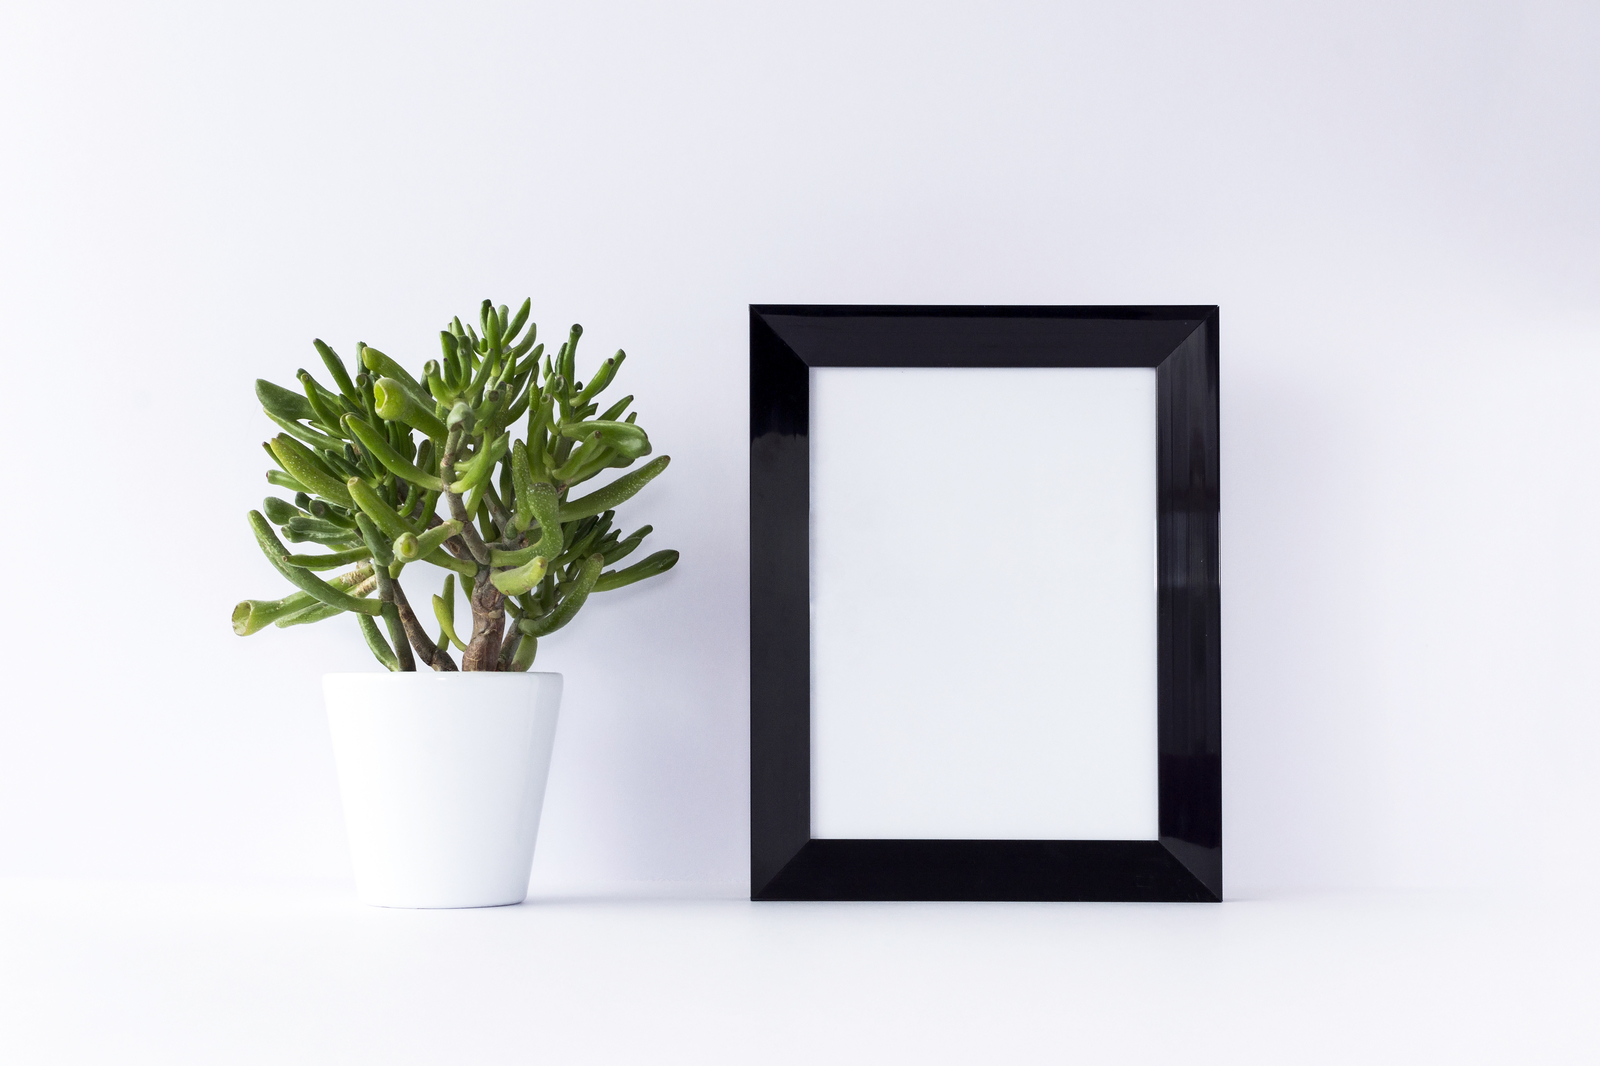 Black Frame Mockup with Cactus Flower